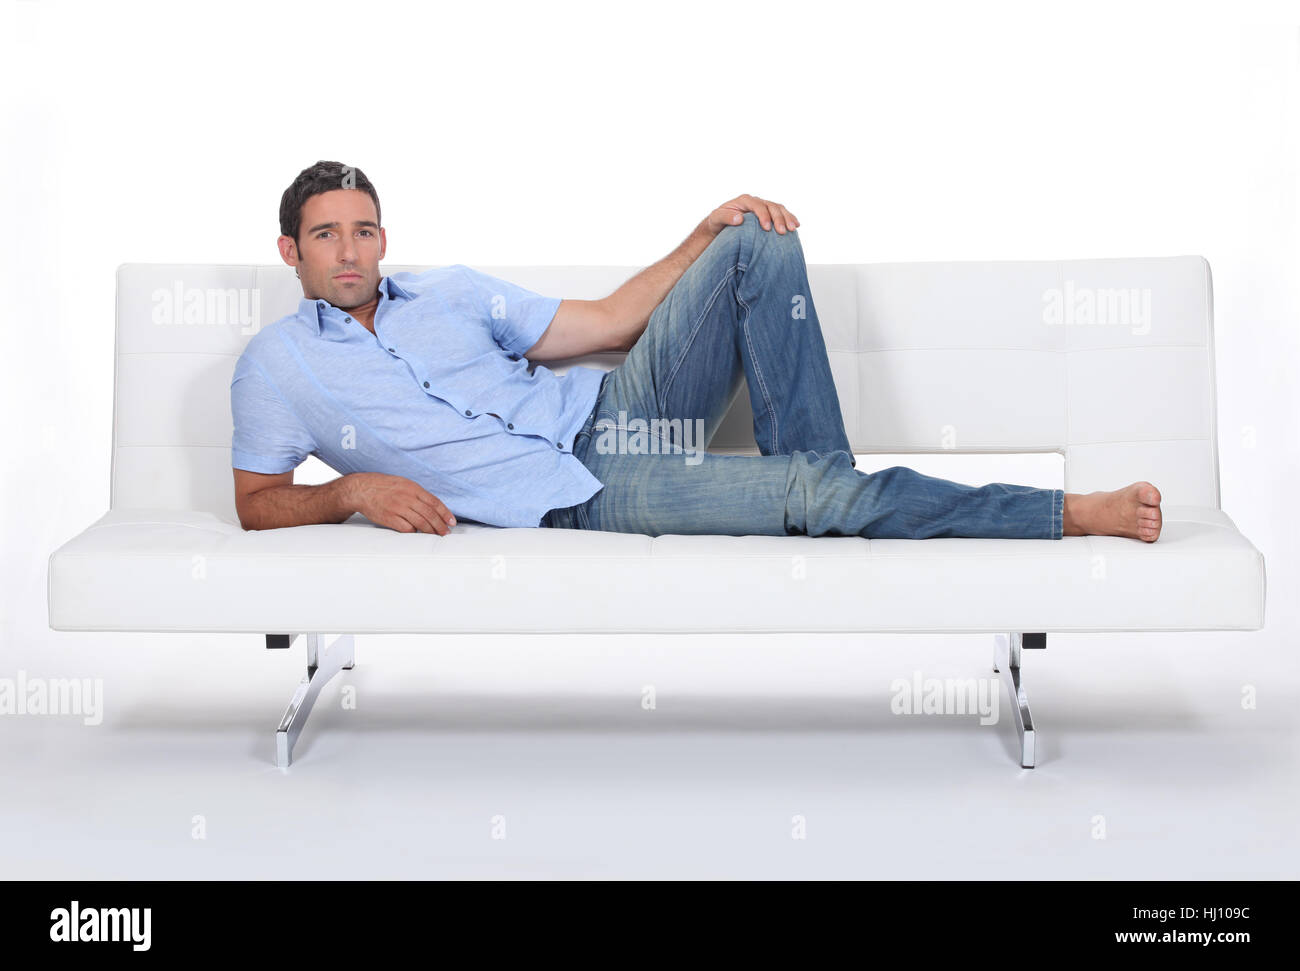 blank, european, caucasian, barefoot, bad, peccant, wickedly, evil, badly, Stock Photo